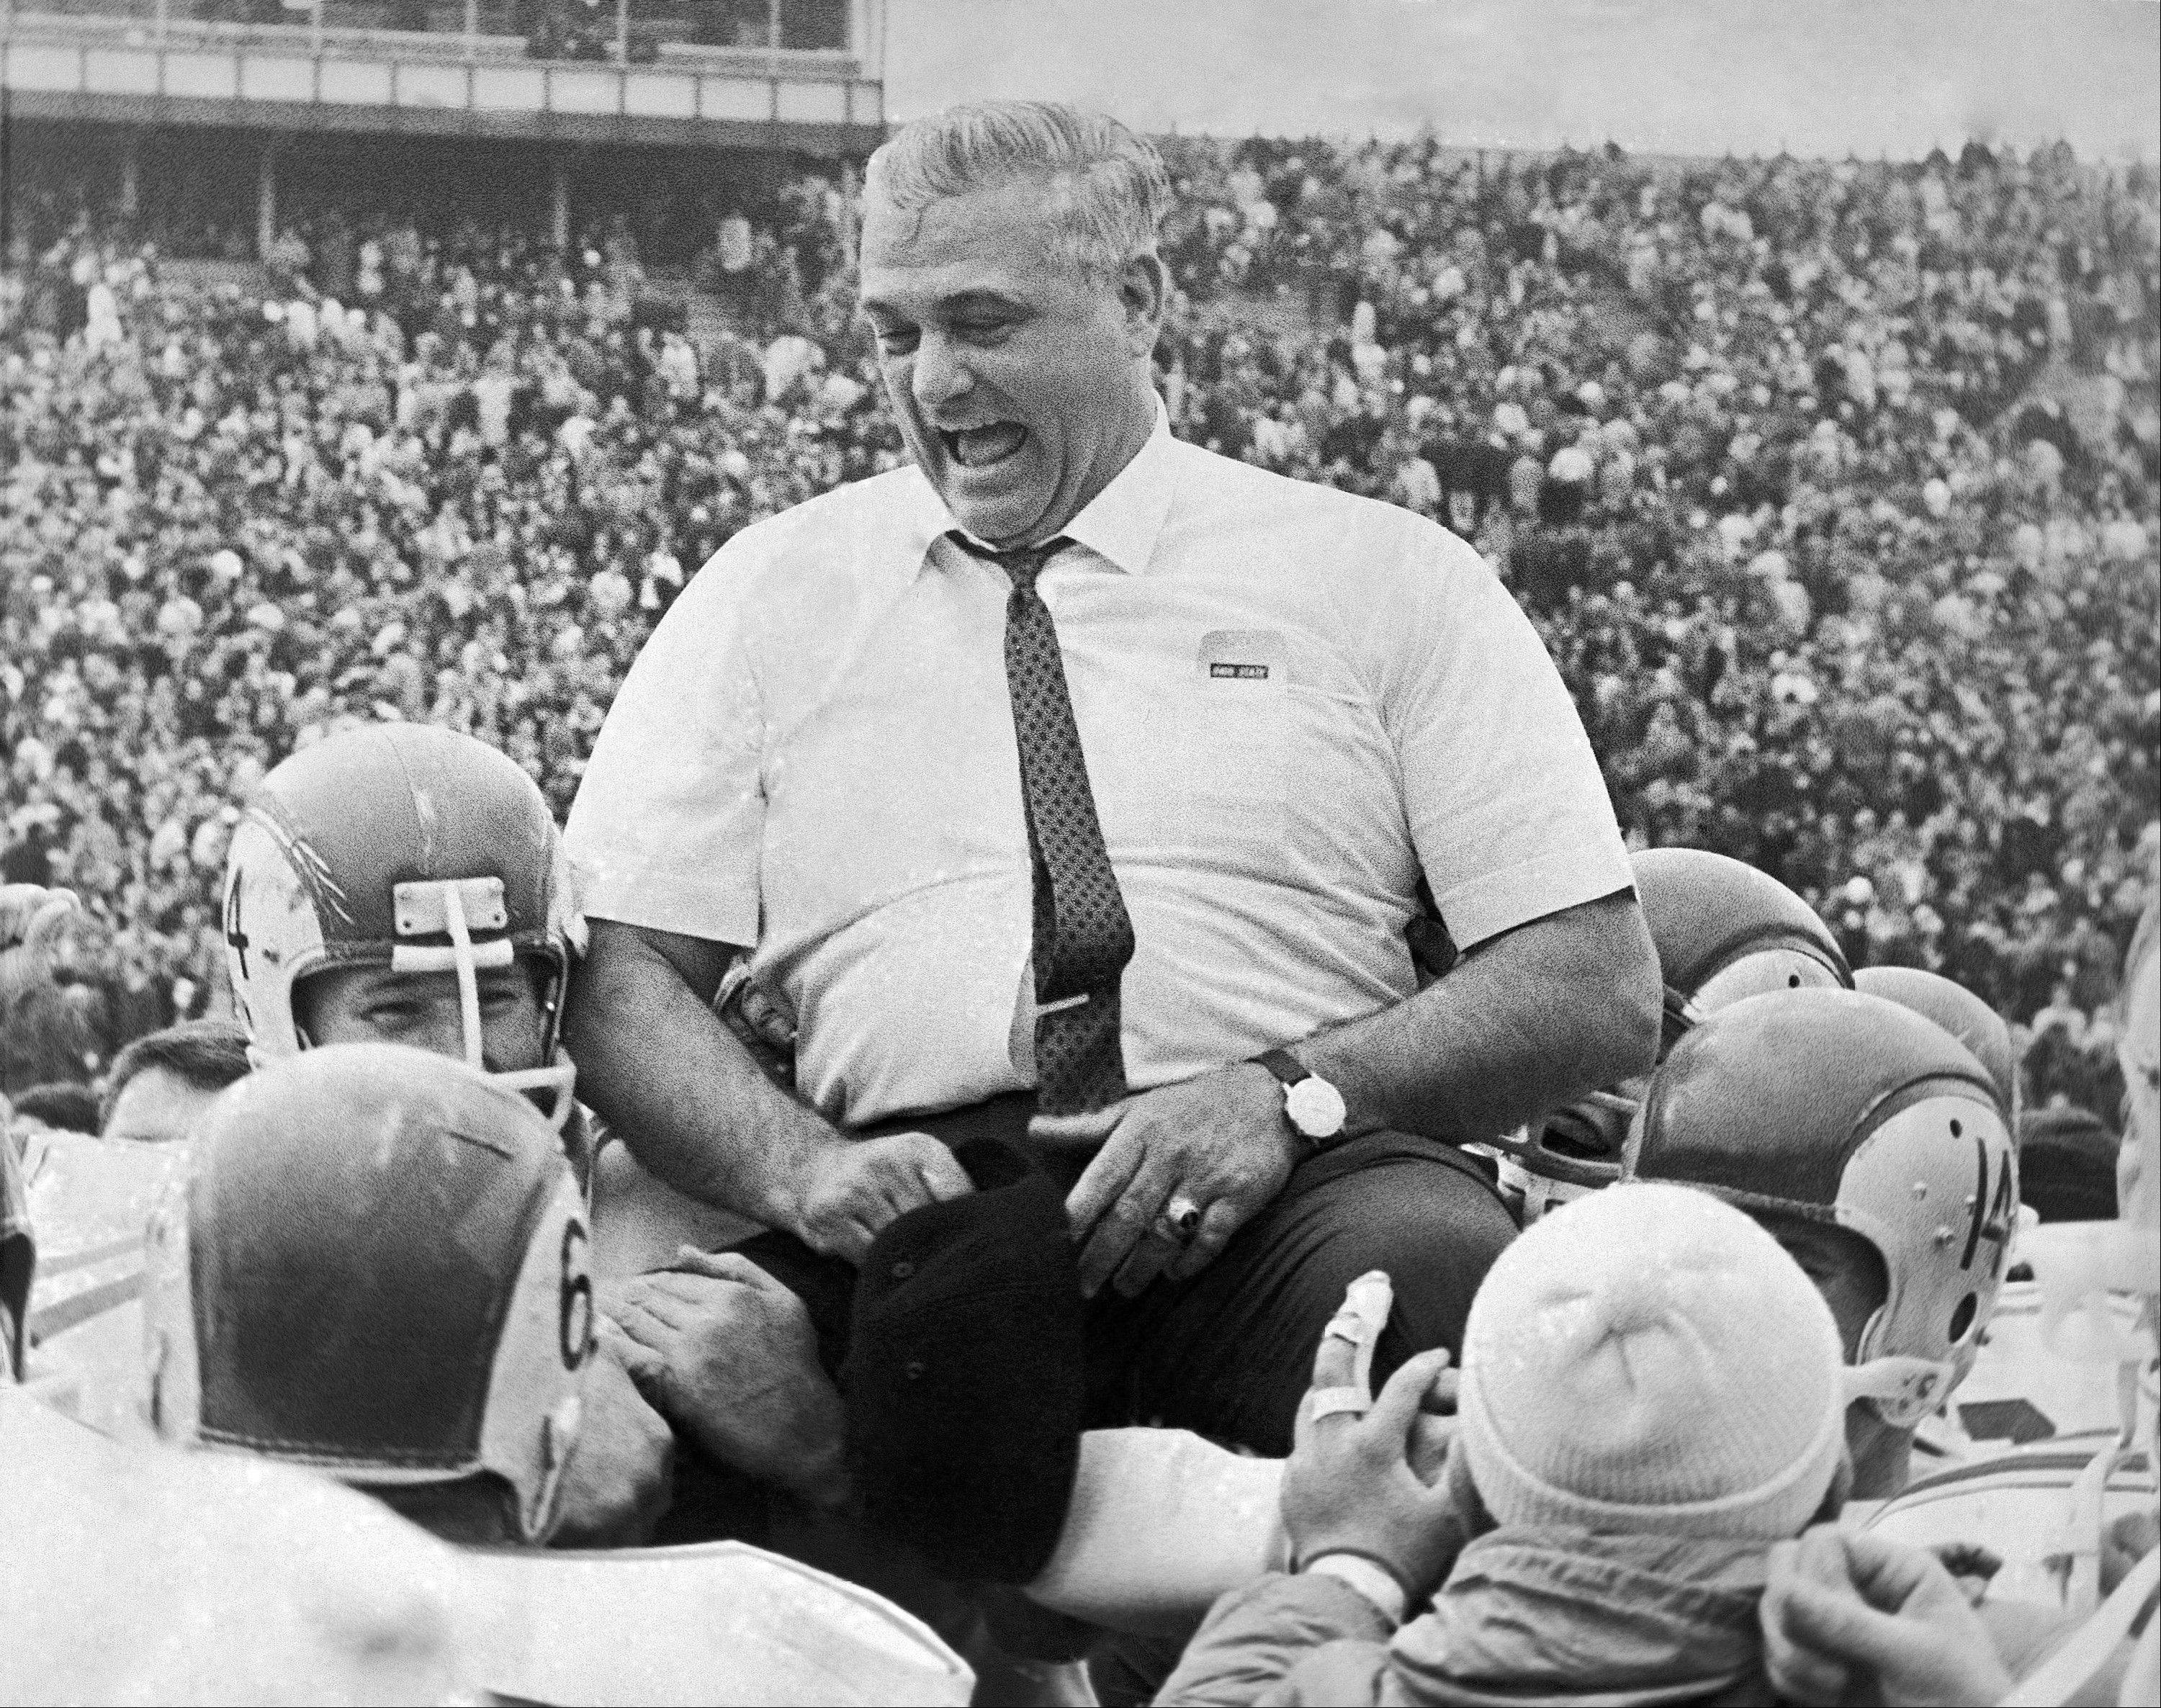 Legendary Ohio State coach Woody Hayes, whose record was 205-61-10 with the Buckeyes, lost his job after punching an opposing player in the 1978 Gator Bowl.